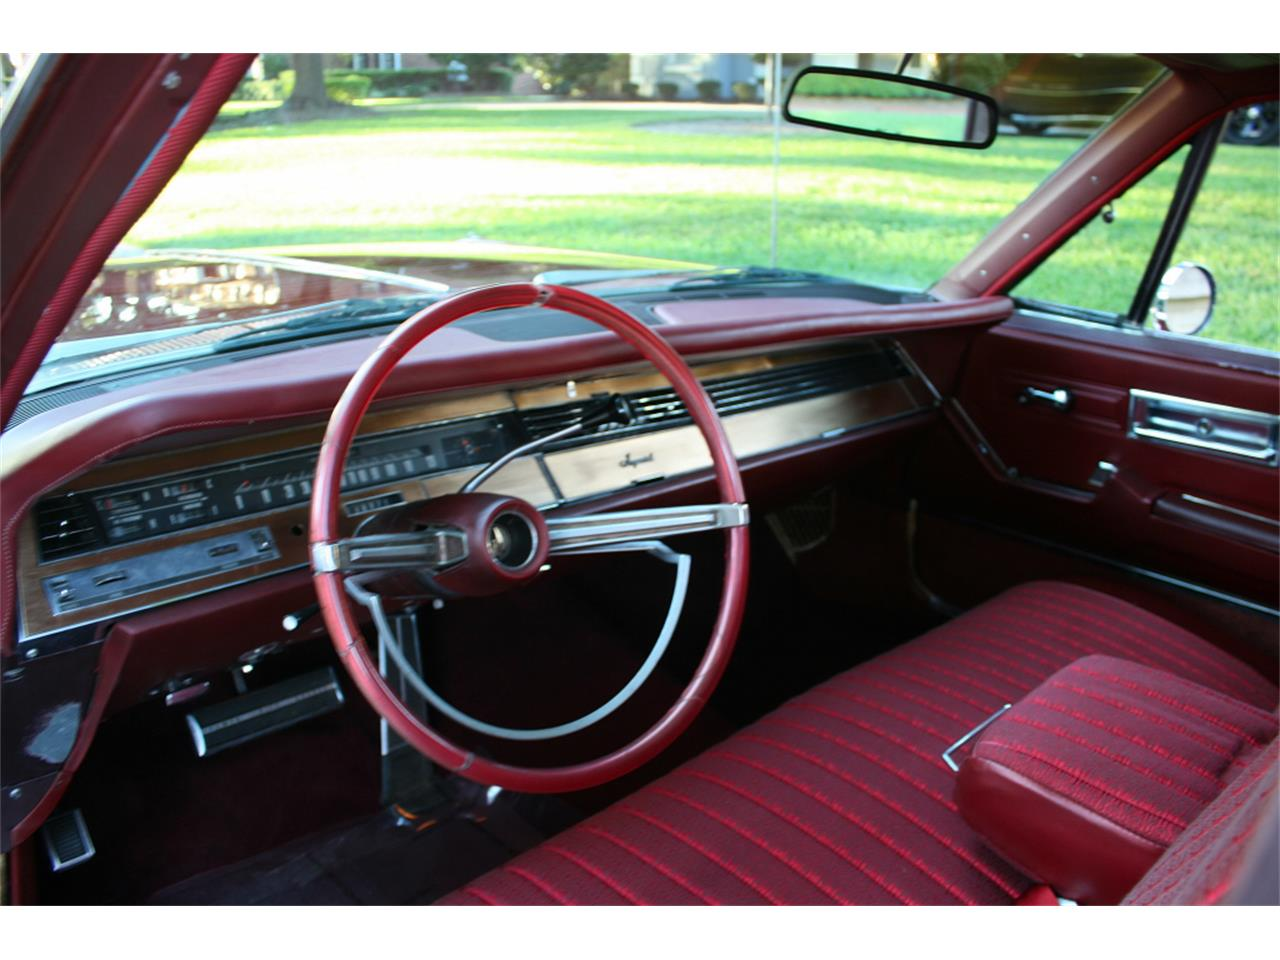 1968 Chrysler Imperial for sale in Lakeland, FL – photo 30